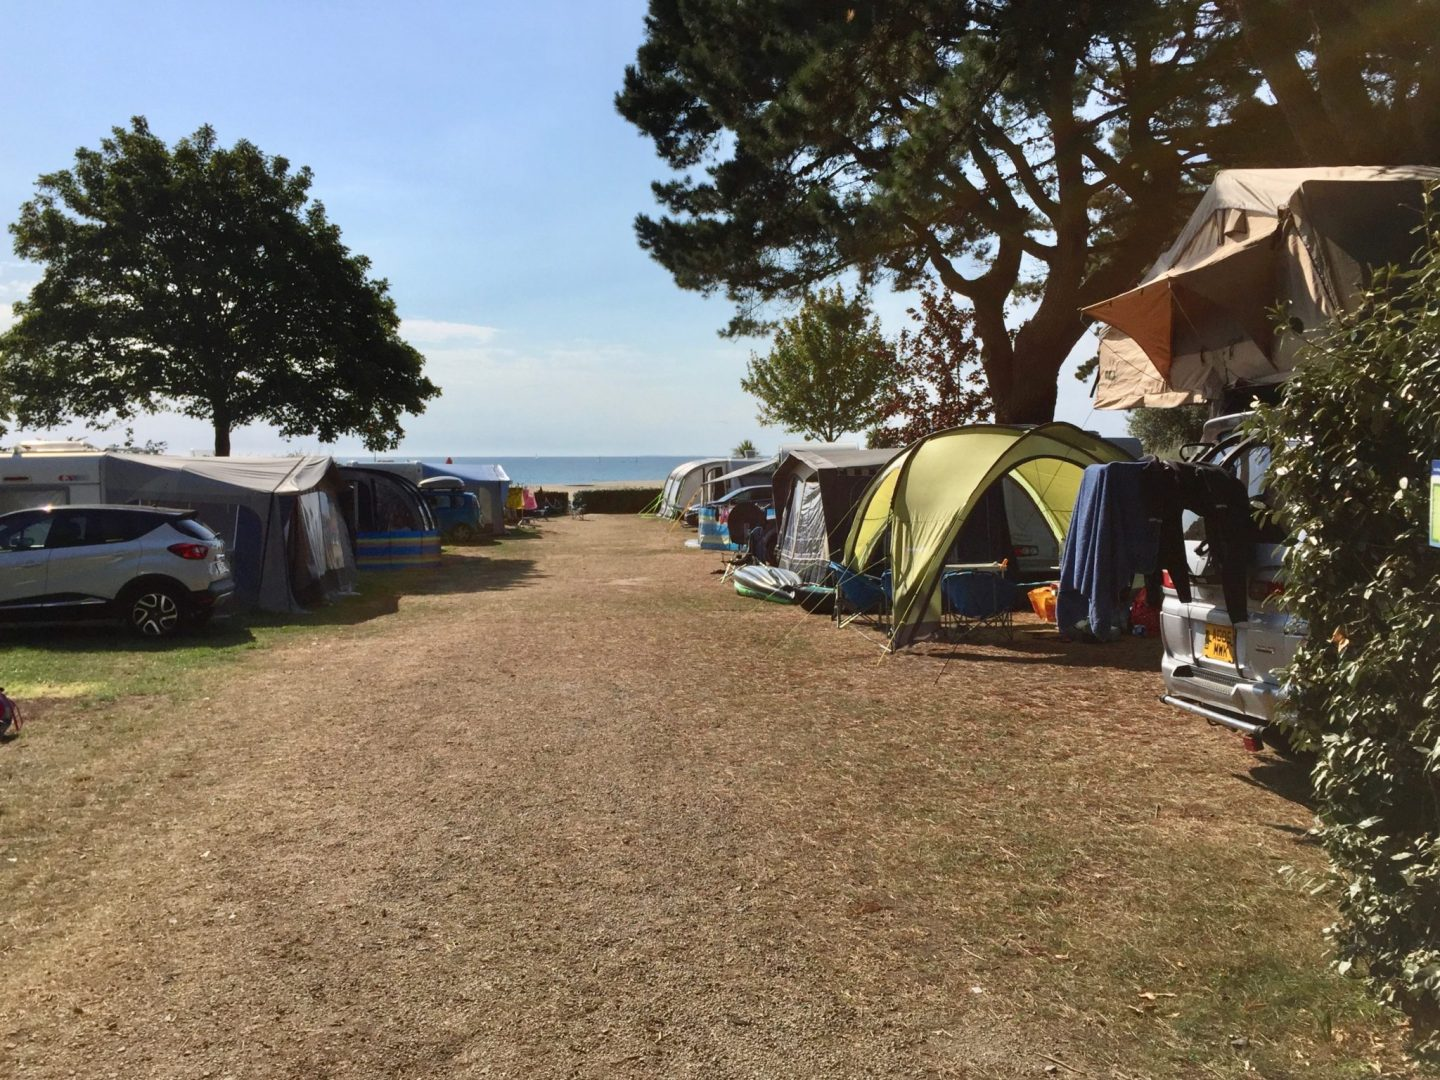 Pitches - Review Camping Du Letty, Benodet